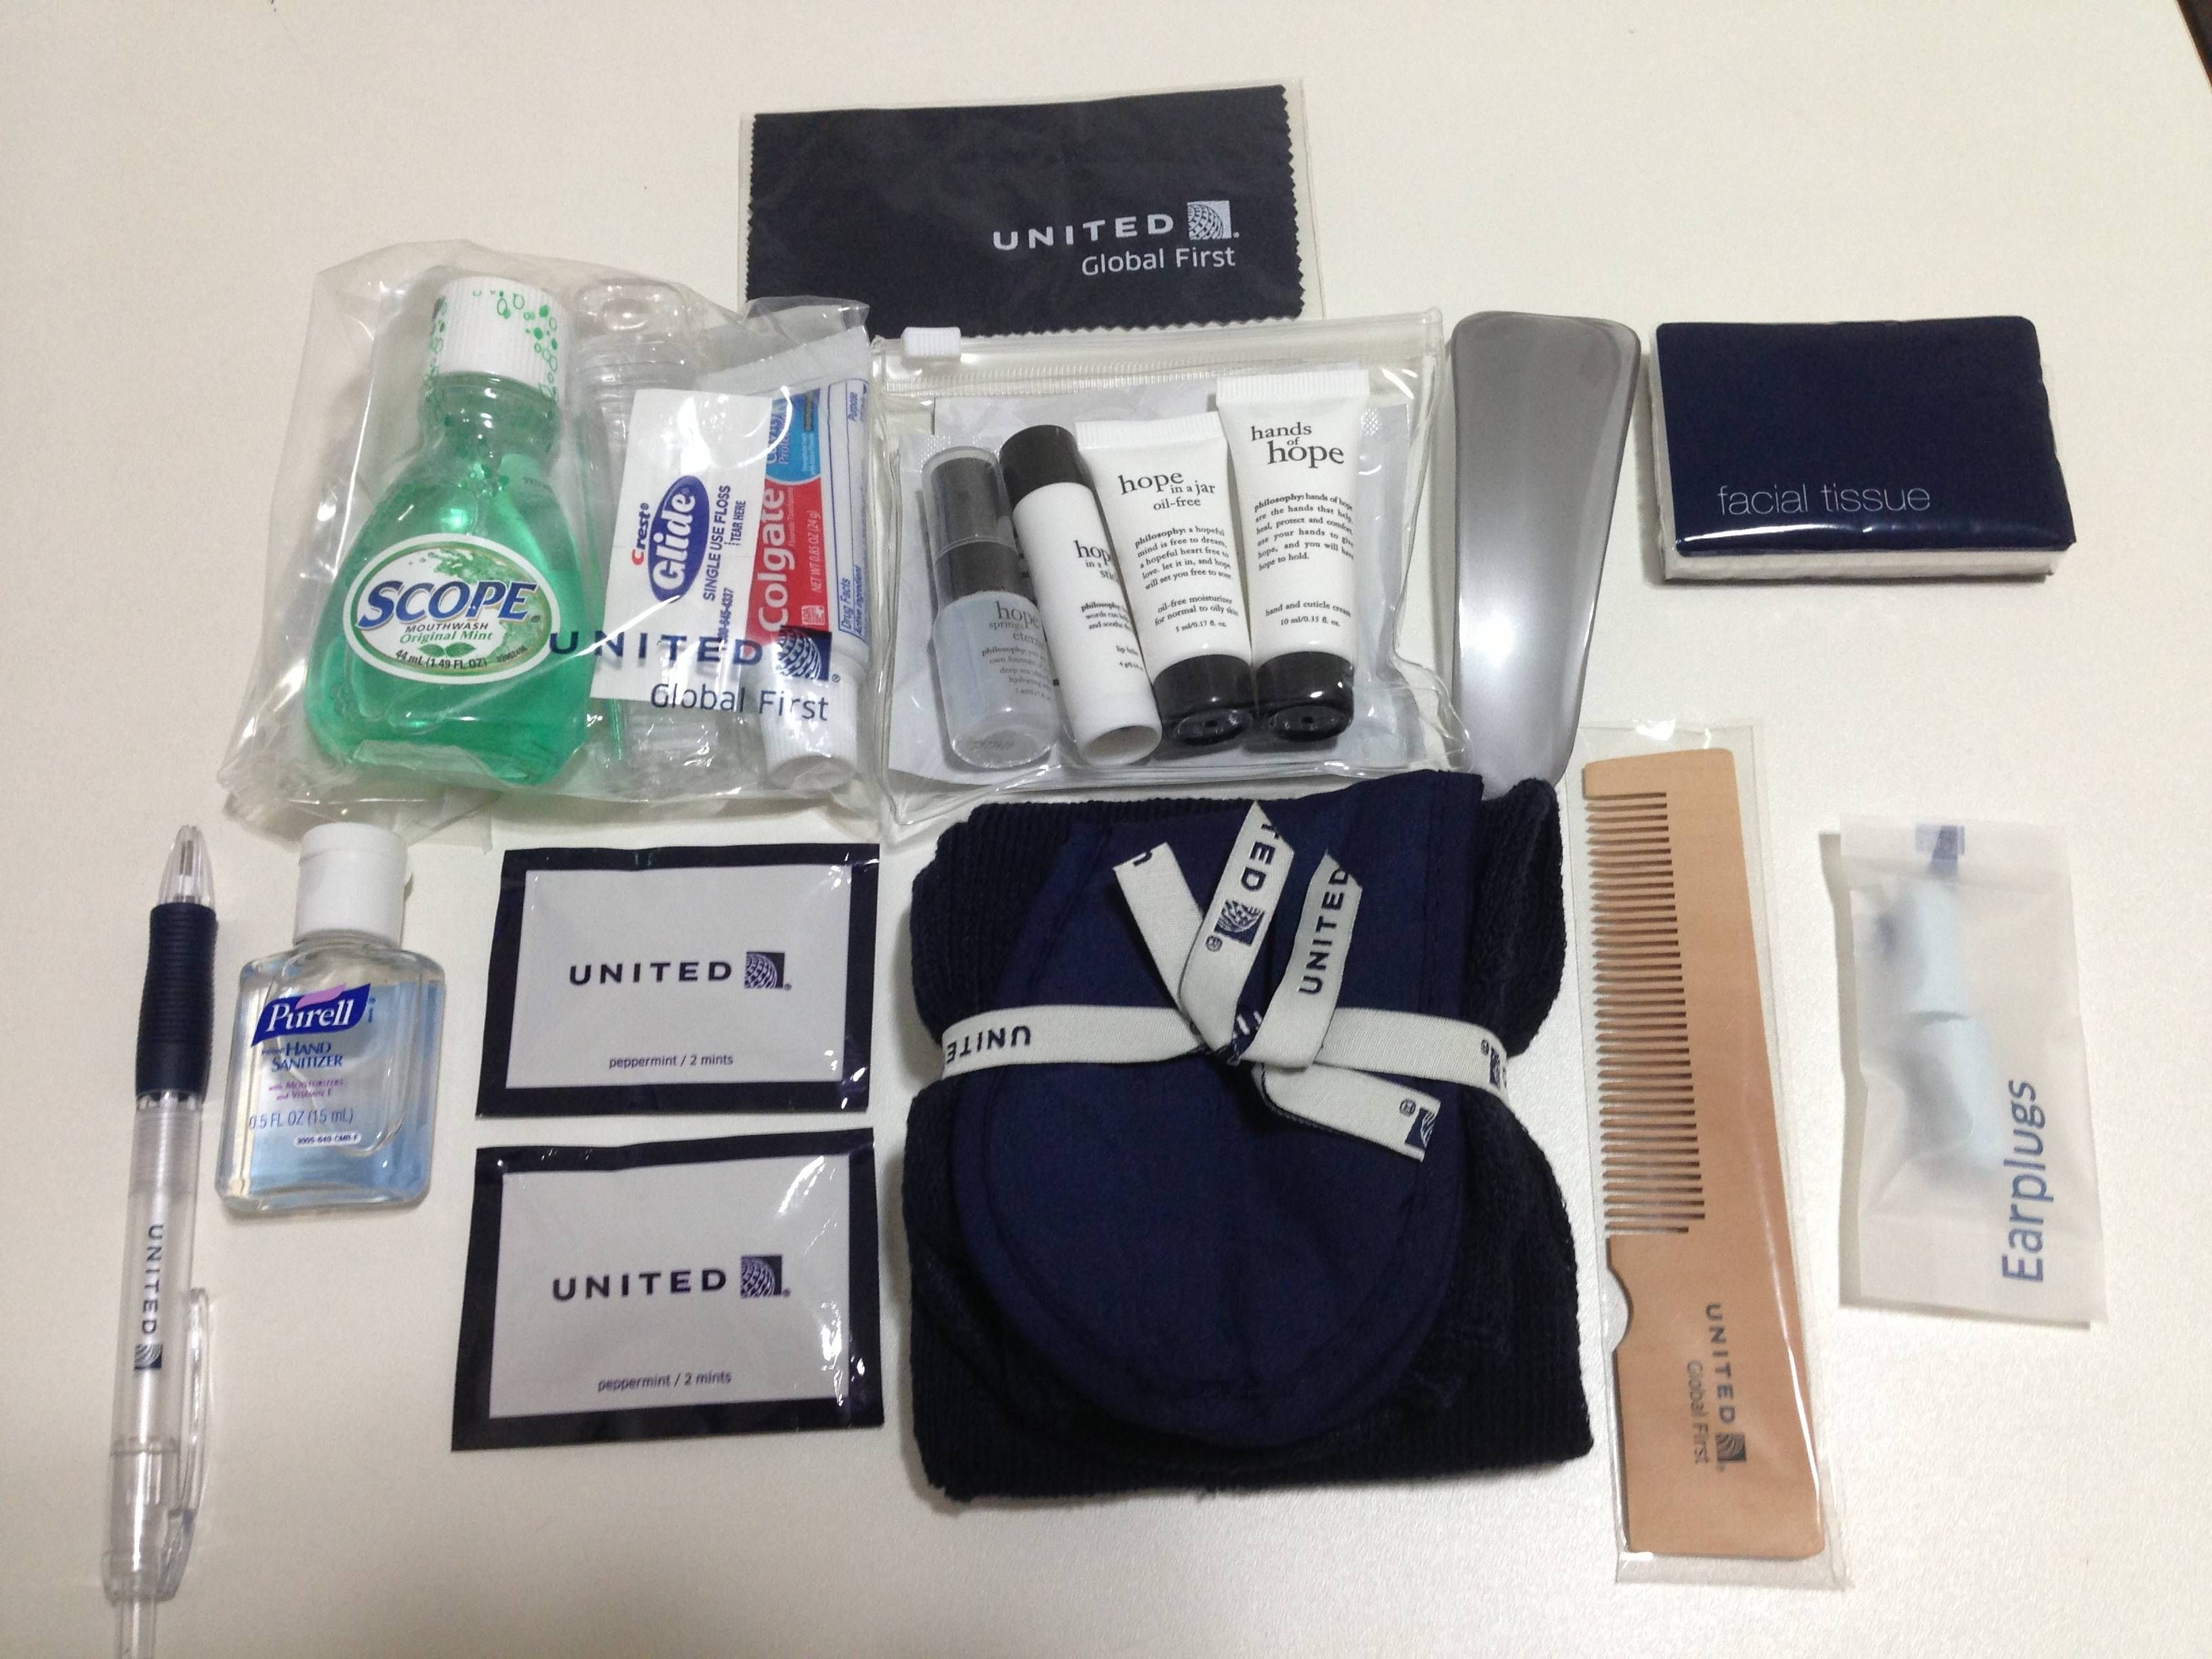 Kit de Amenidades United Primeira Classe - Amenity Kit United Global First